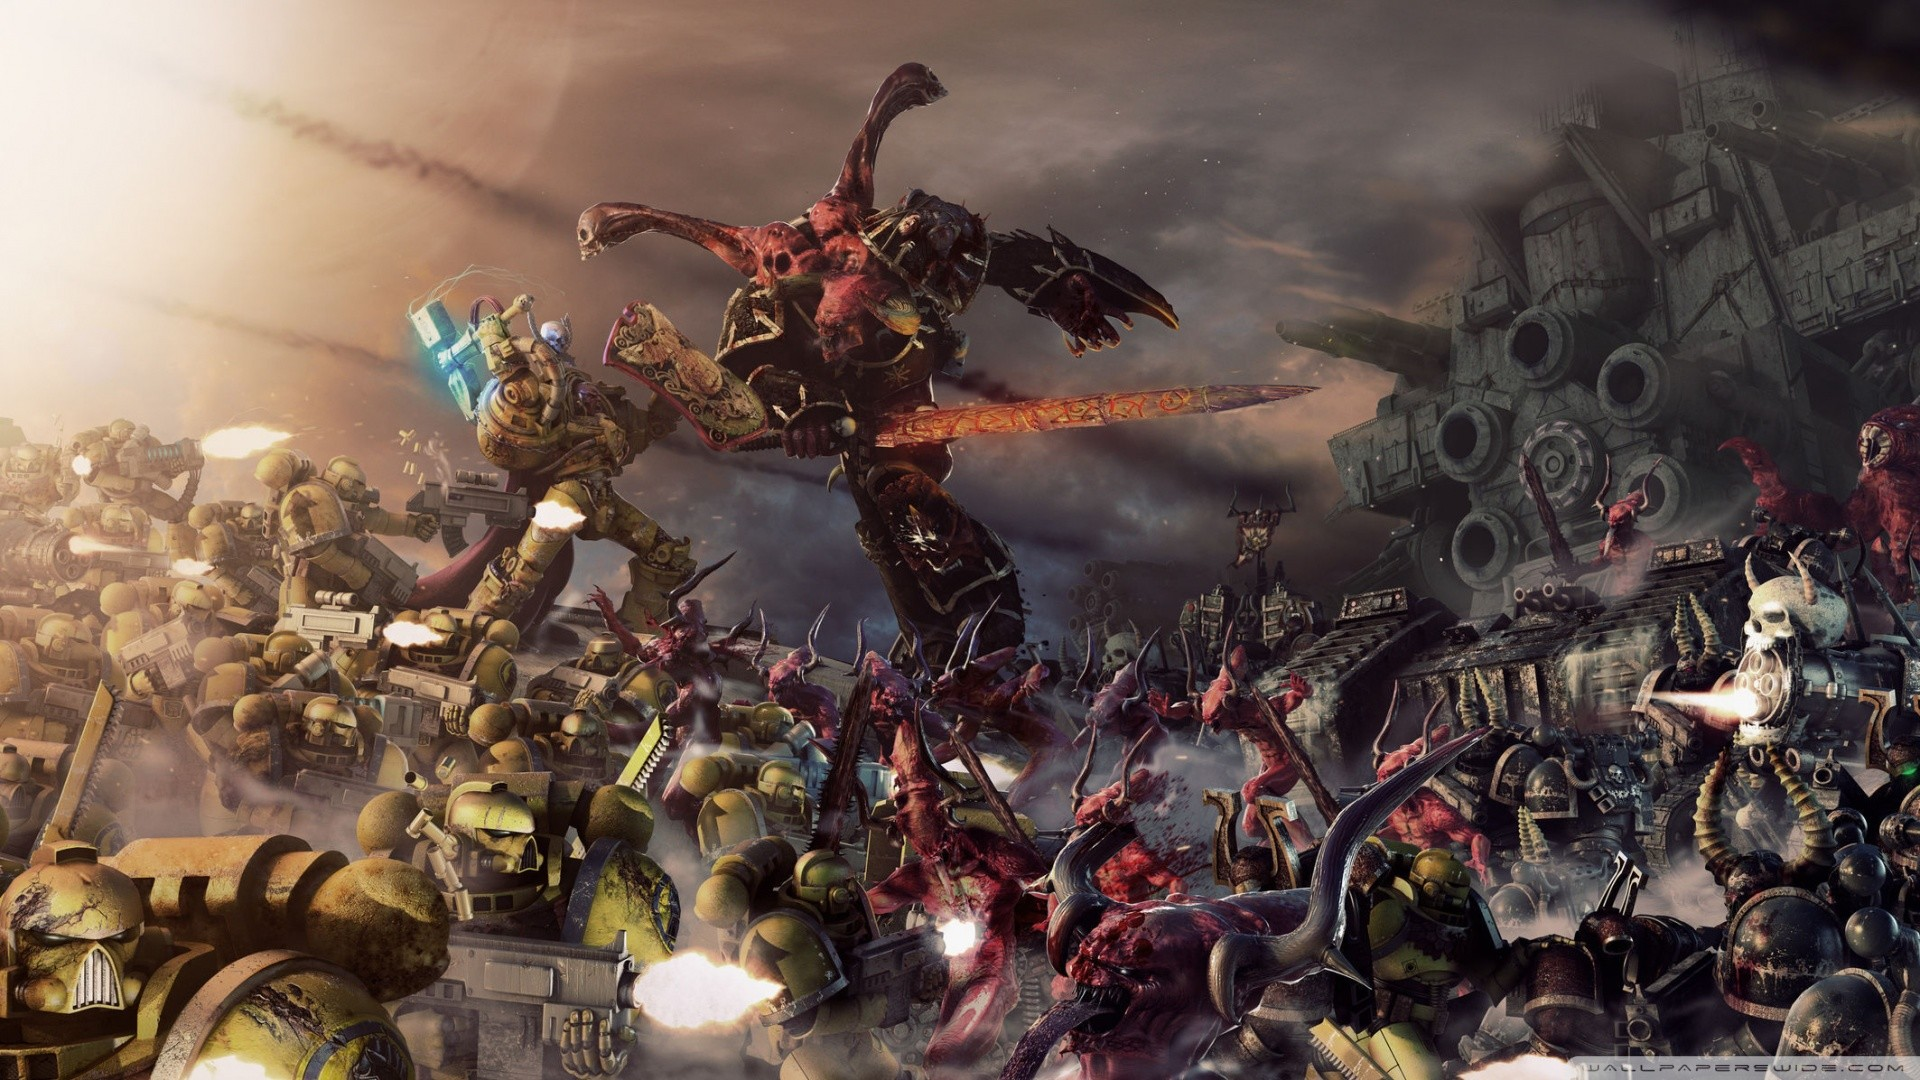 1920x1080 Community Post: 25 Reasons Space Marines Are Awesome